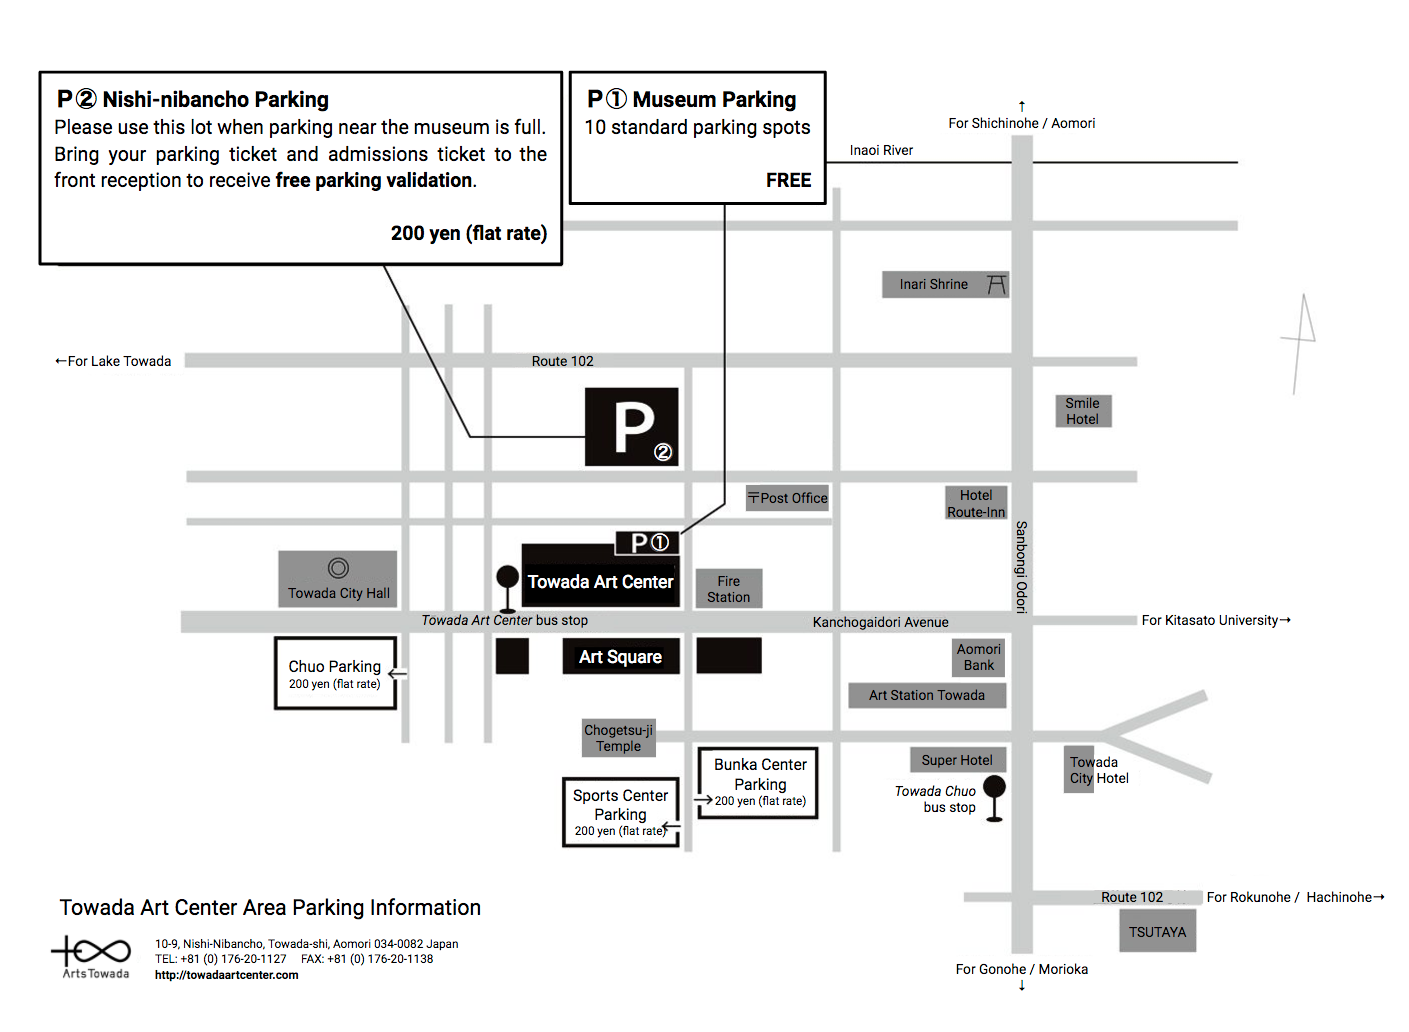 Towada Art Center Area Parking Information